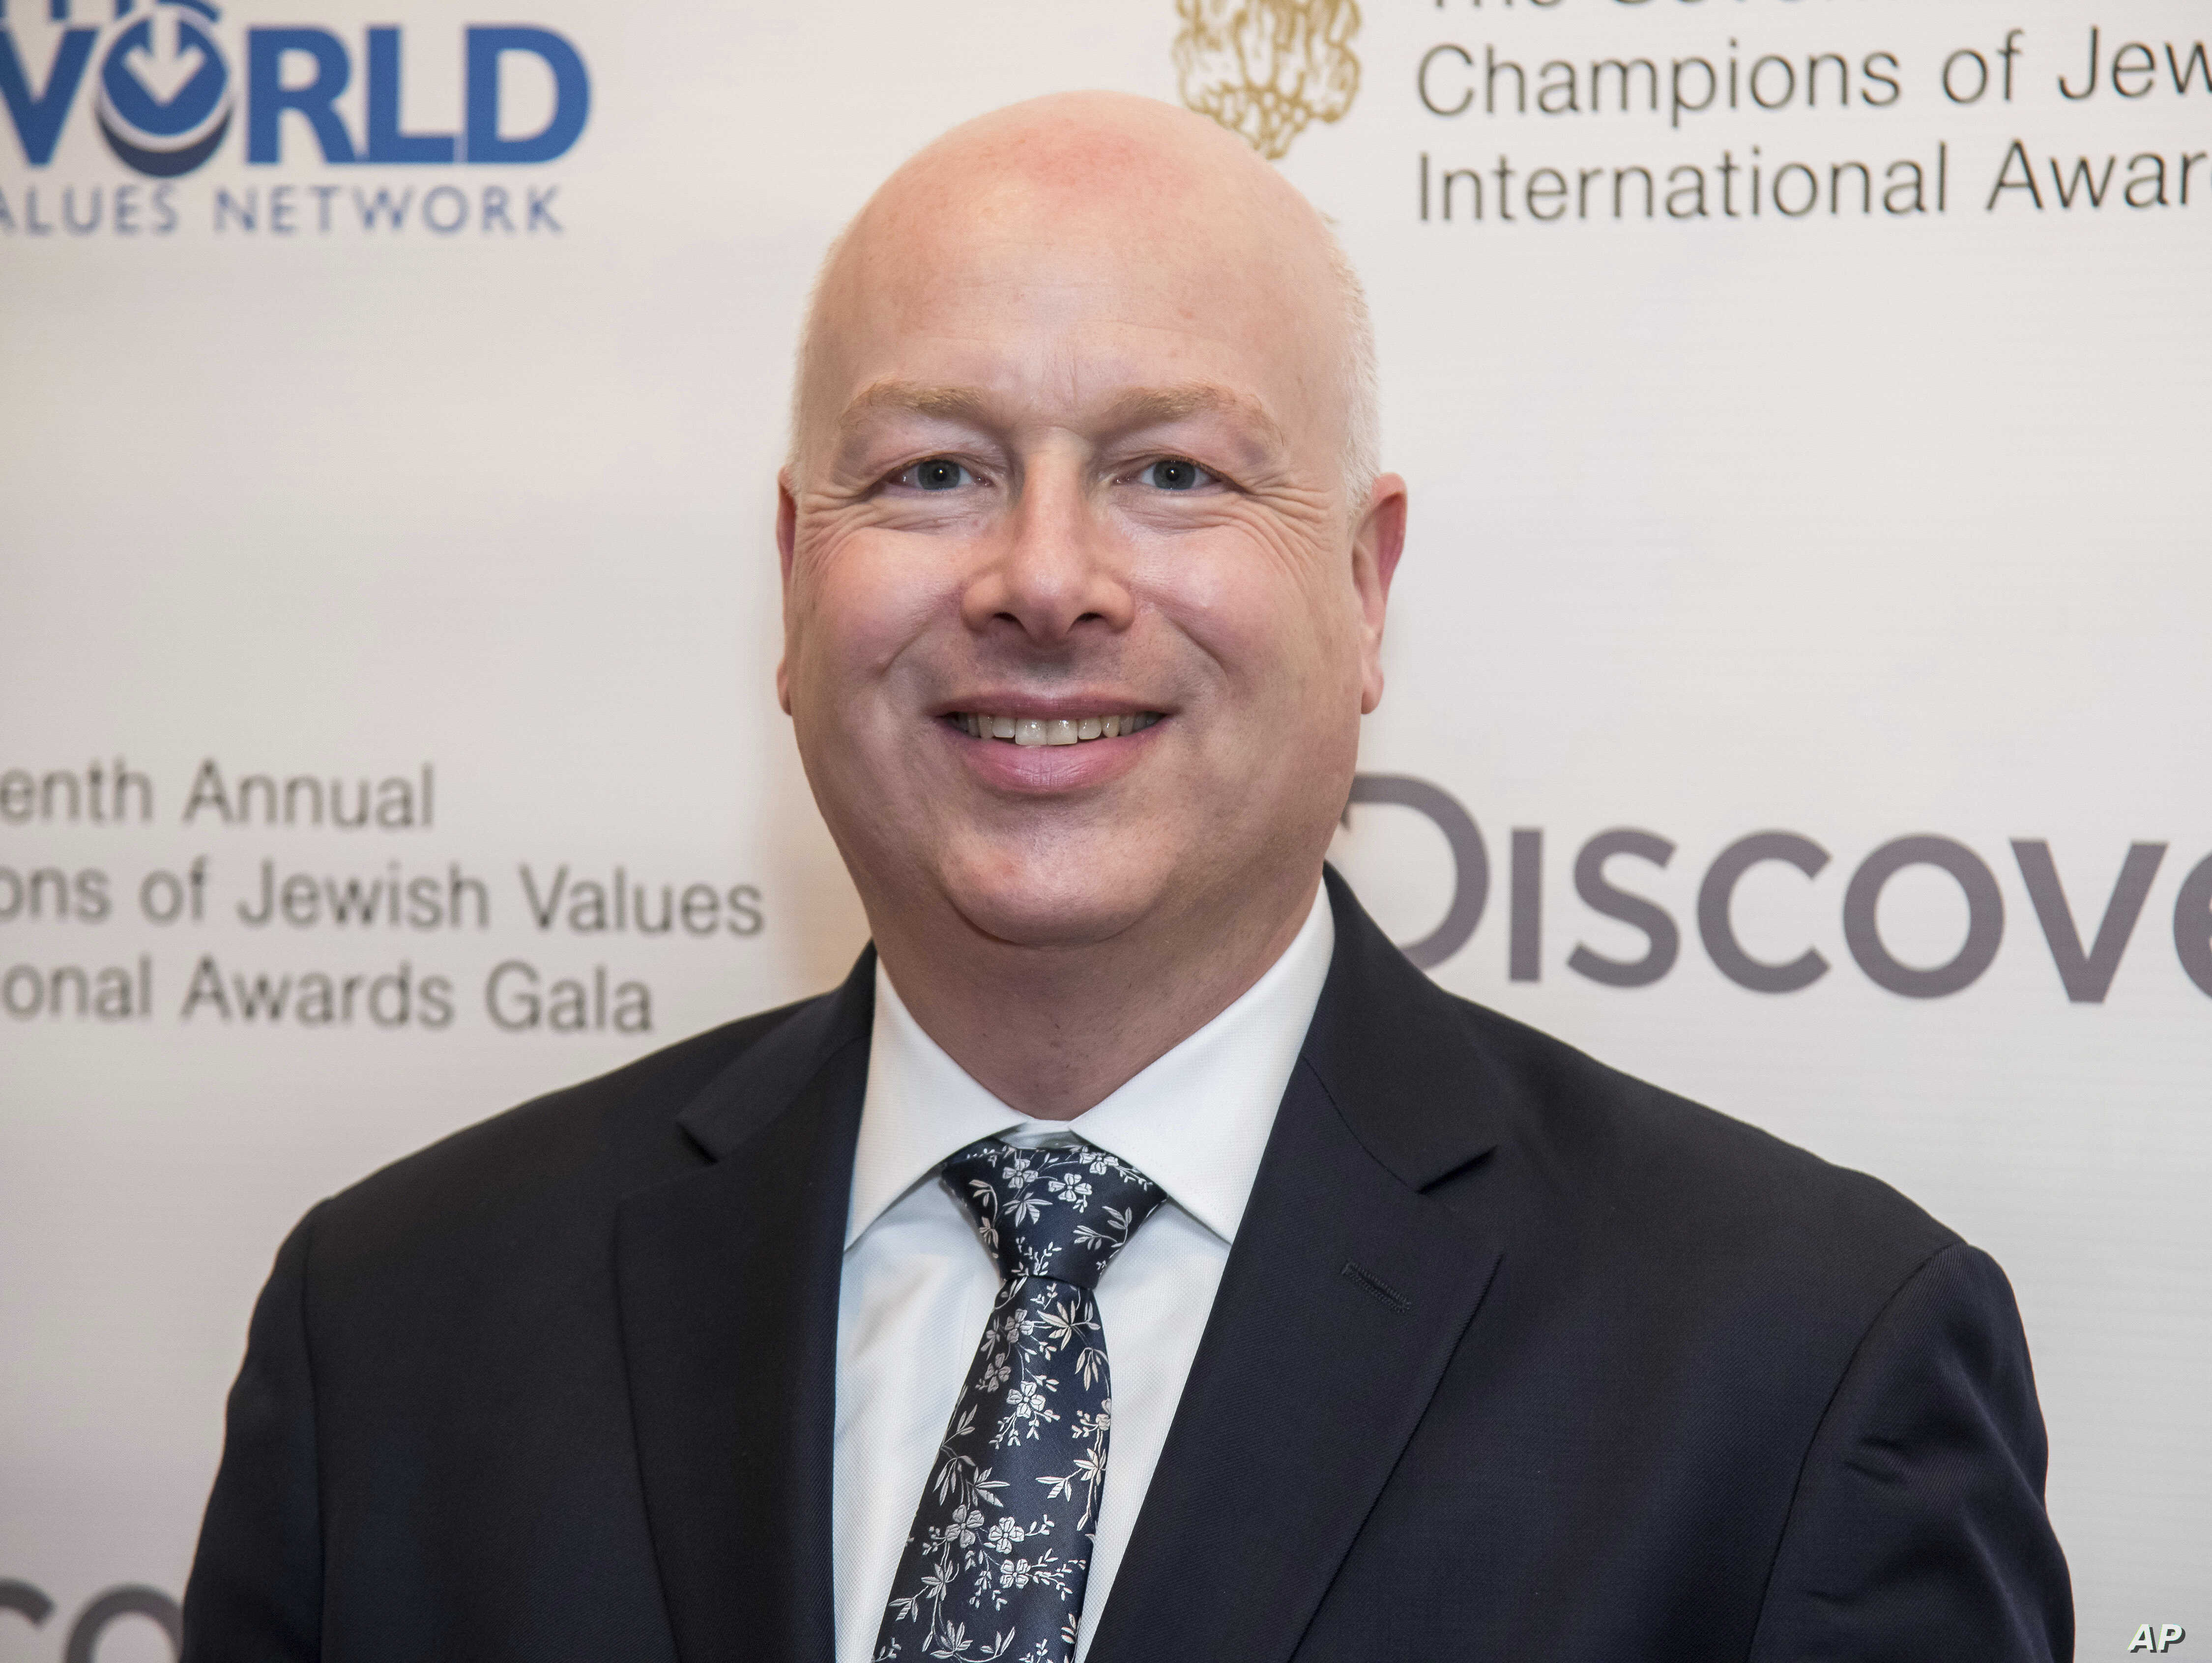 Jason Greenblatt attends the Champions of Jewish Values International Awards gala at Carnegie Hall, March 28, 2019, in New York.